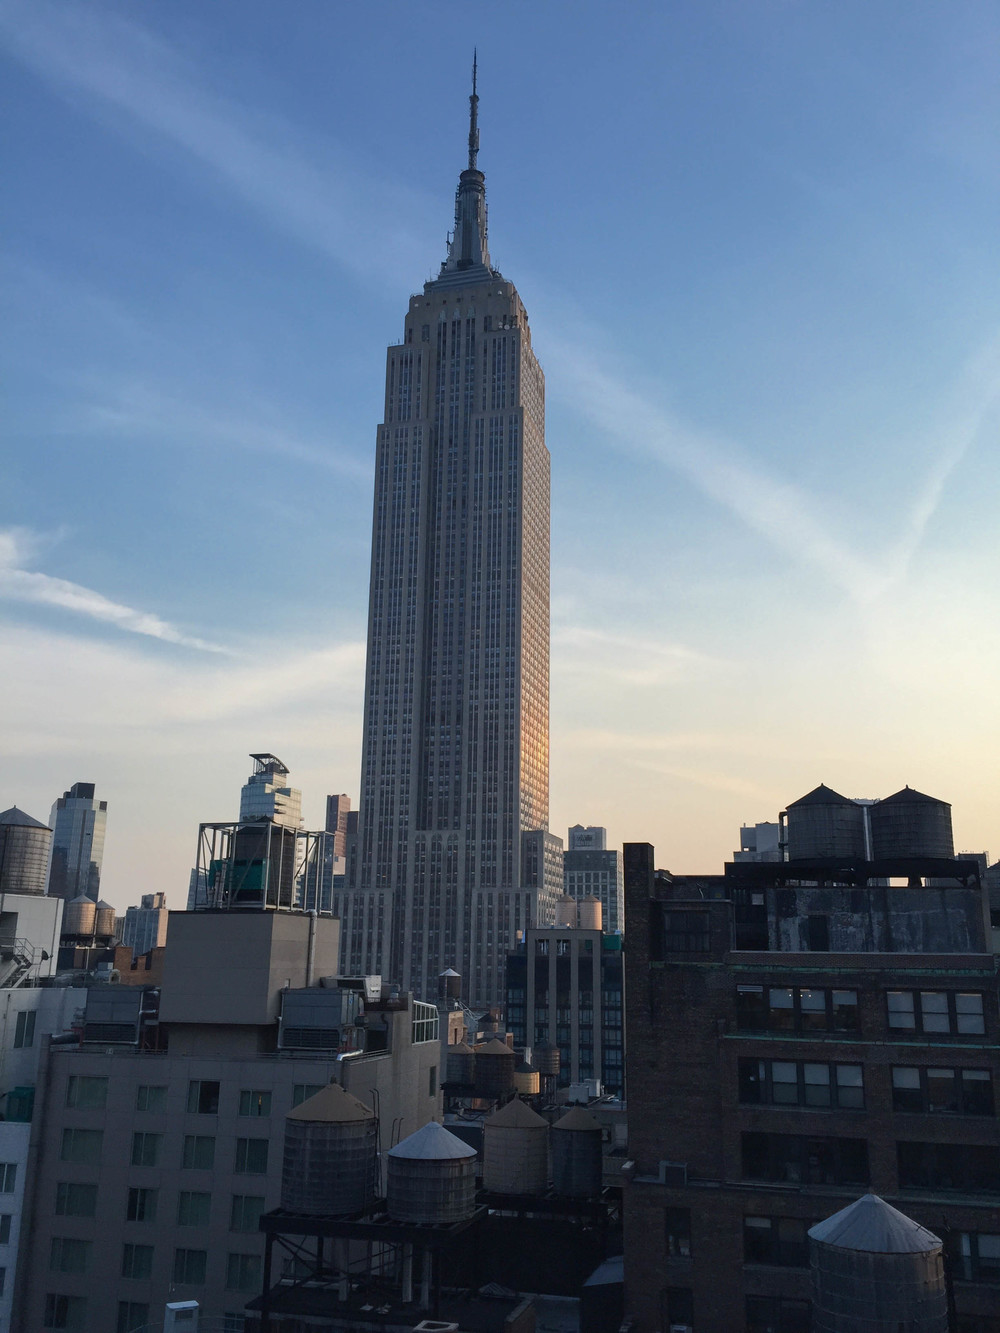 LaurenSchwaiger-Life-Style-Travel-Blog-Empire-State-Building.jpg